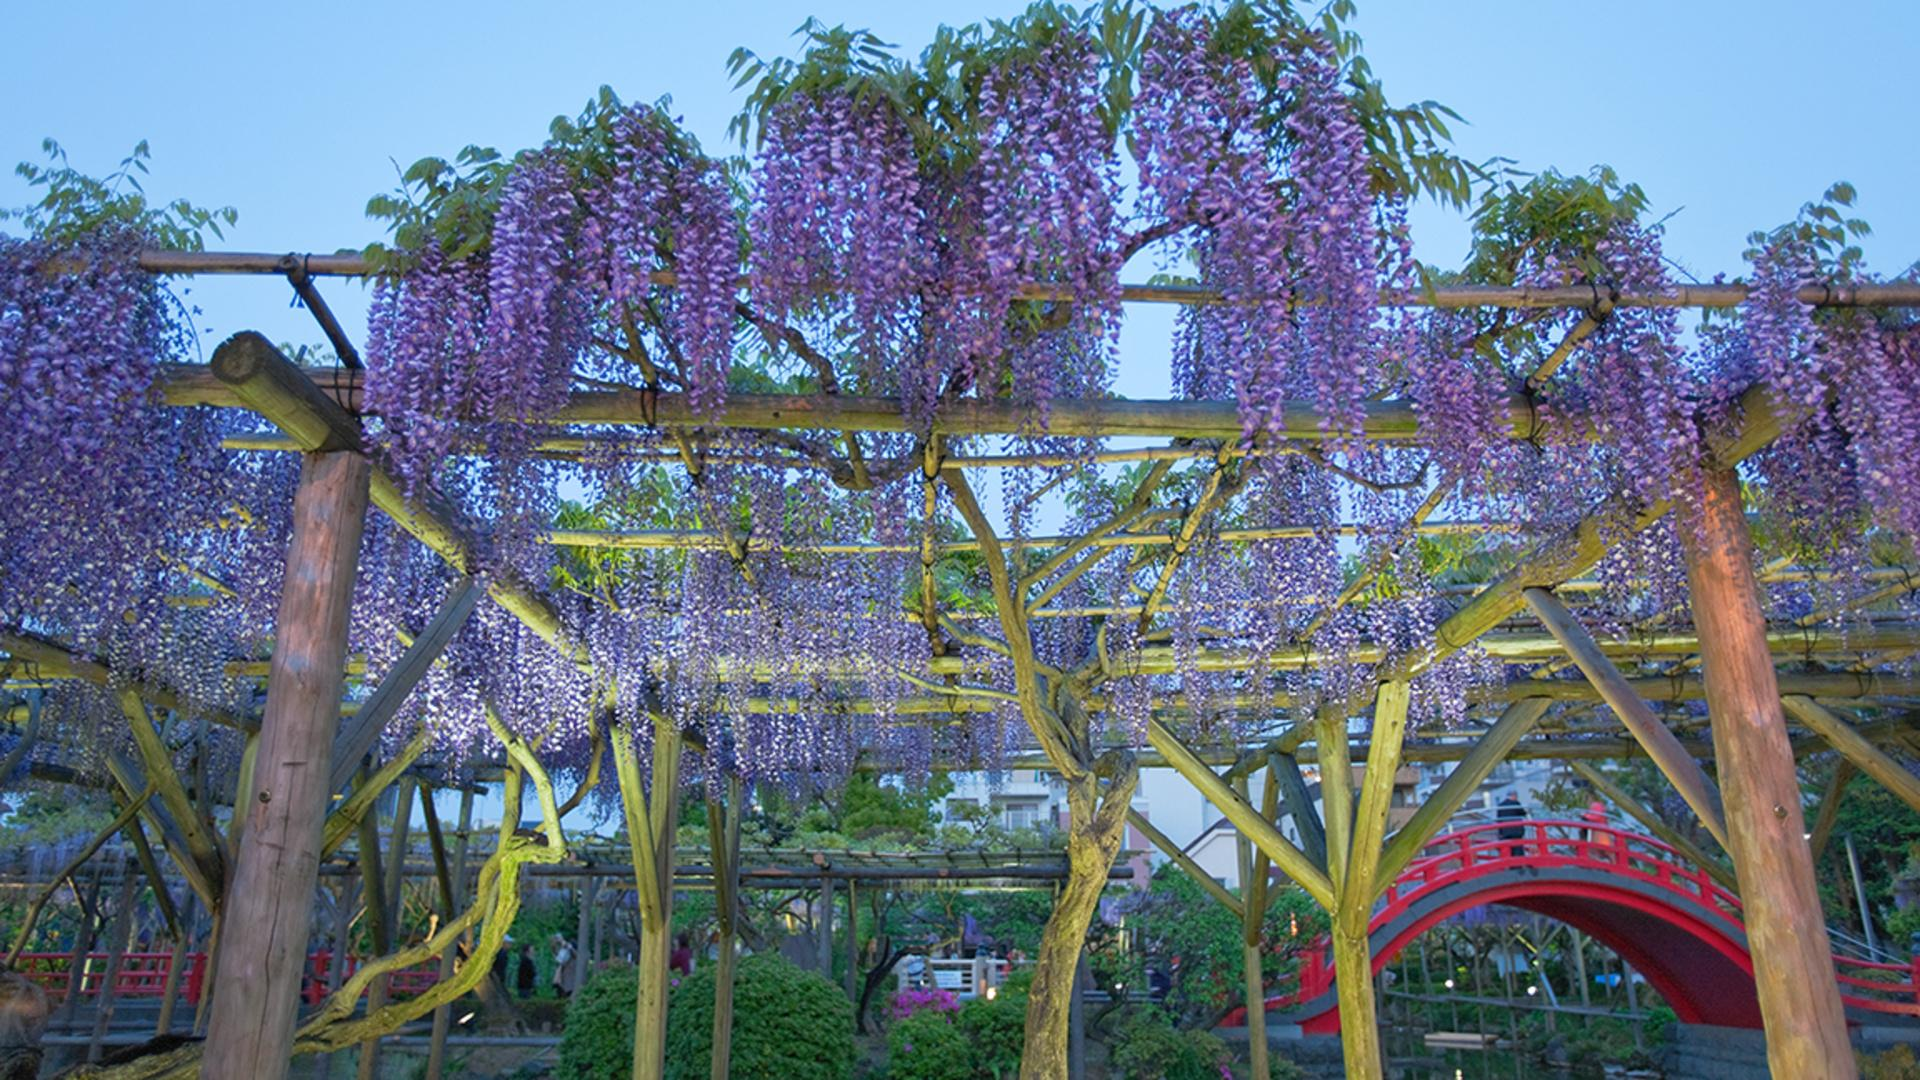 The Wisteria Flower Tunnel in Japan Is the Most Magical Place Ever